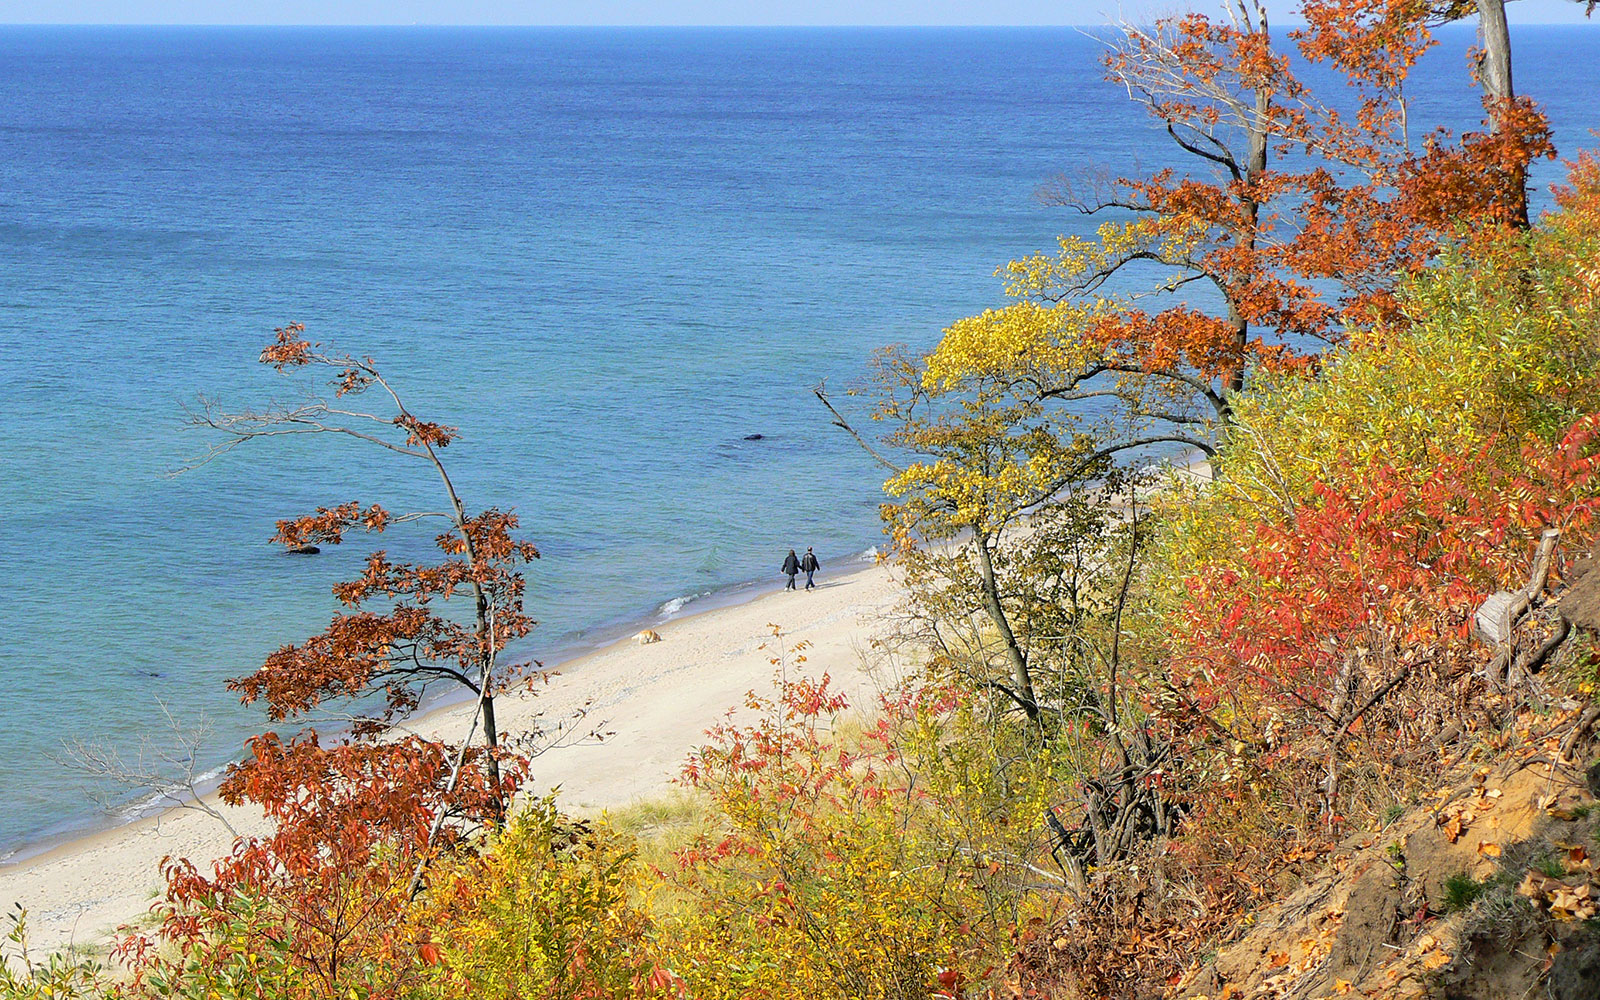 Most Romantic Fall Getaways: Saugatuck, MI